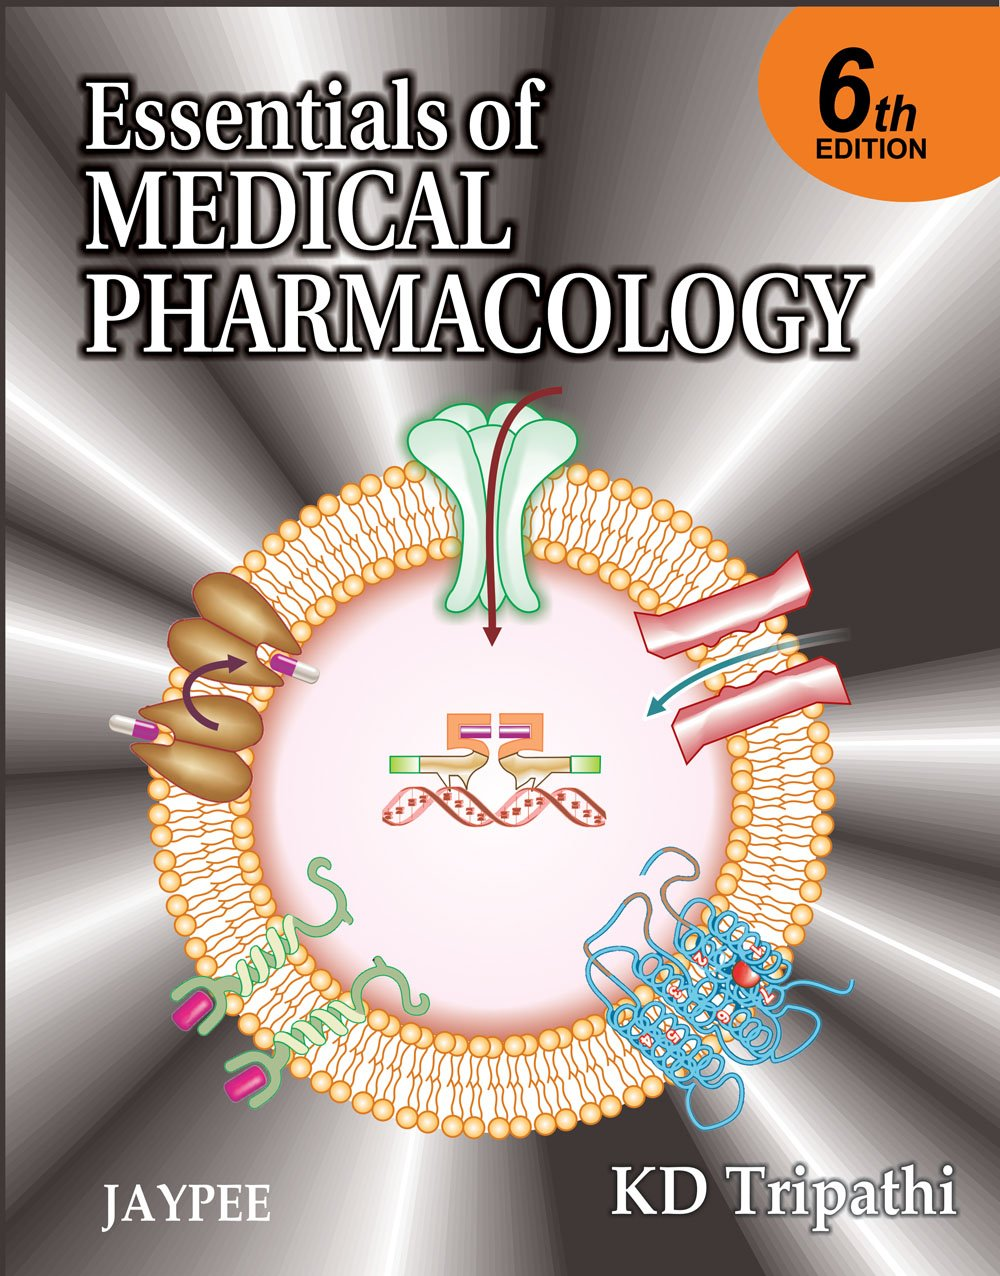 PHARMACOLOGY KD TRIPATHI EPUB DOWNLOAD